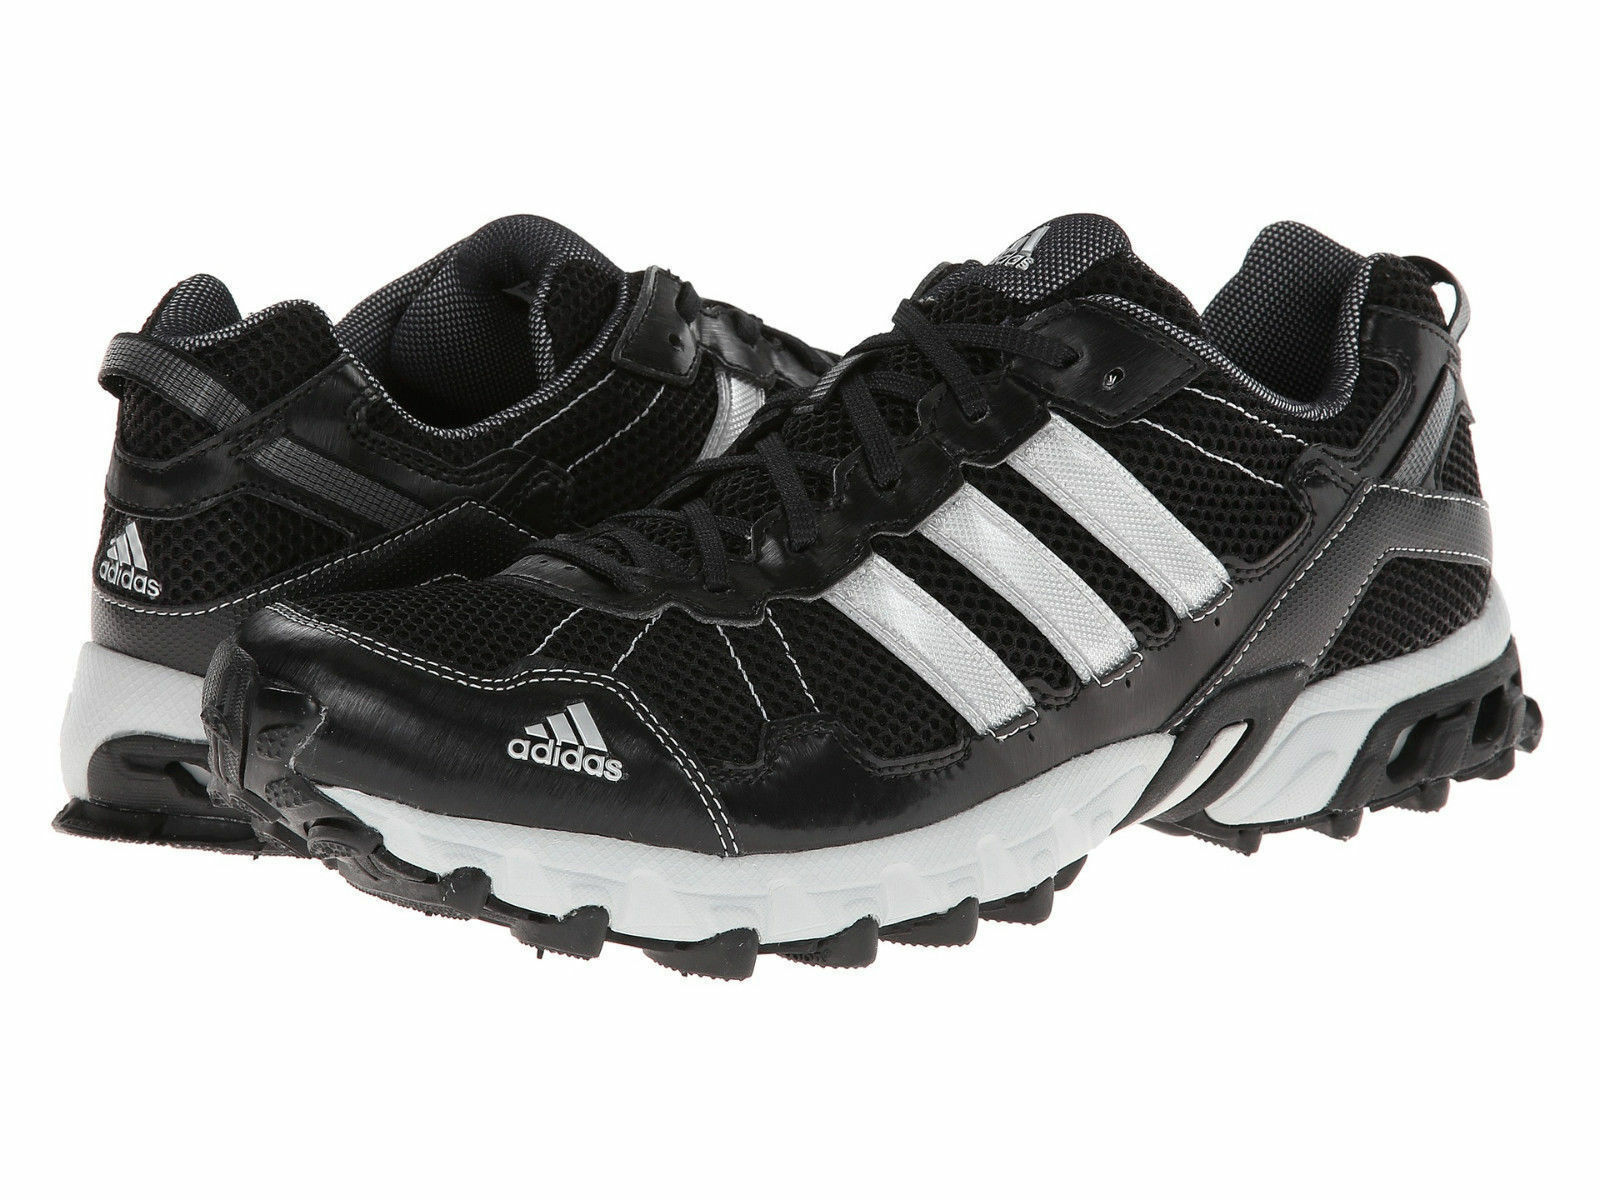 Adidas Performance Mens Thrasher 1.1 M Trail Running shoes Sizes  8 thru 8.5